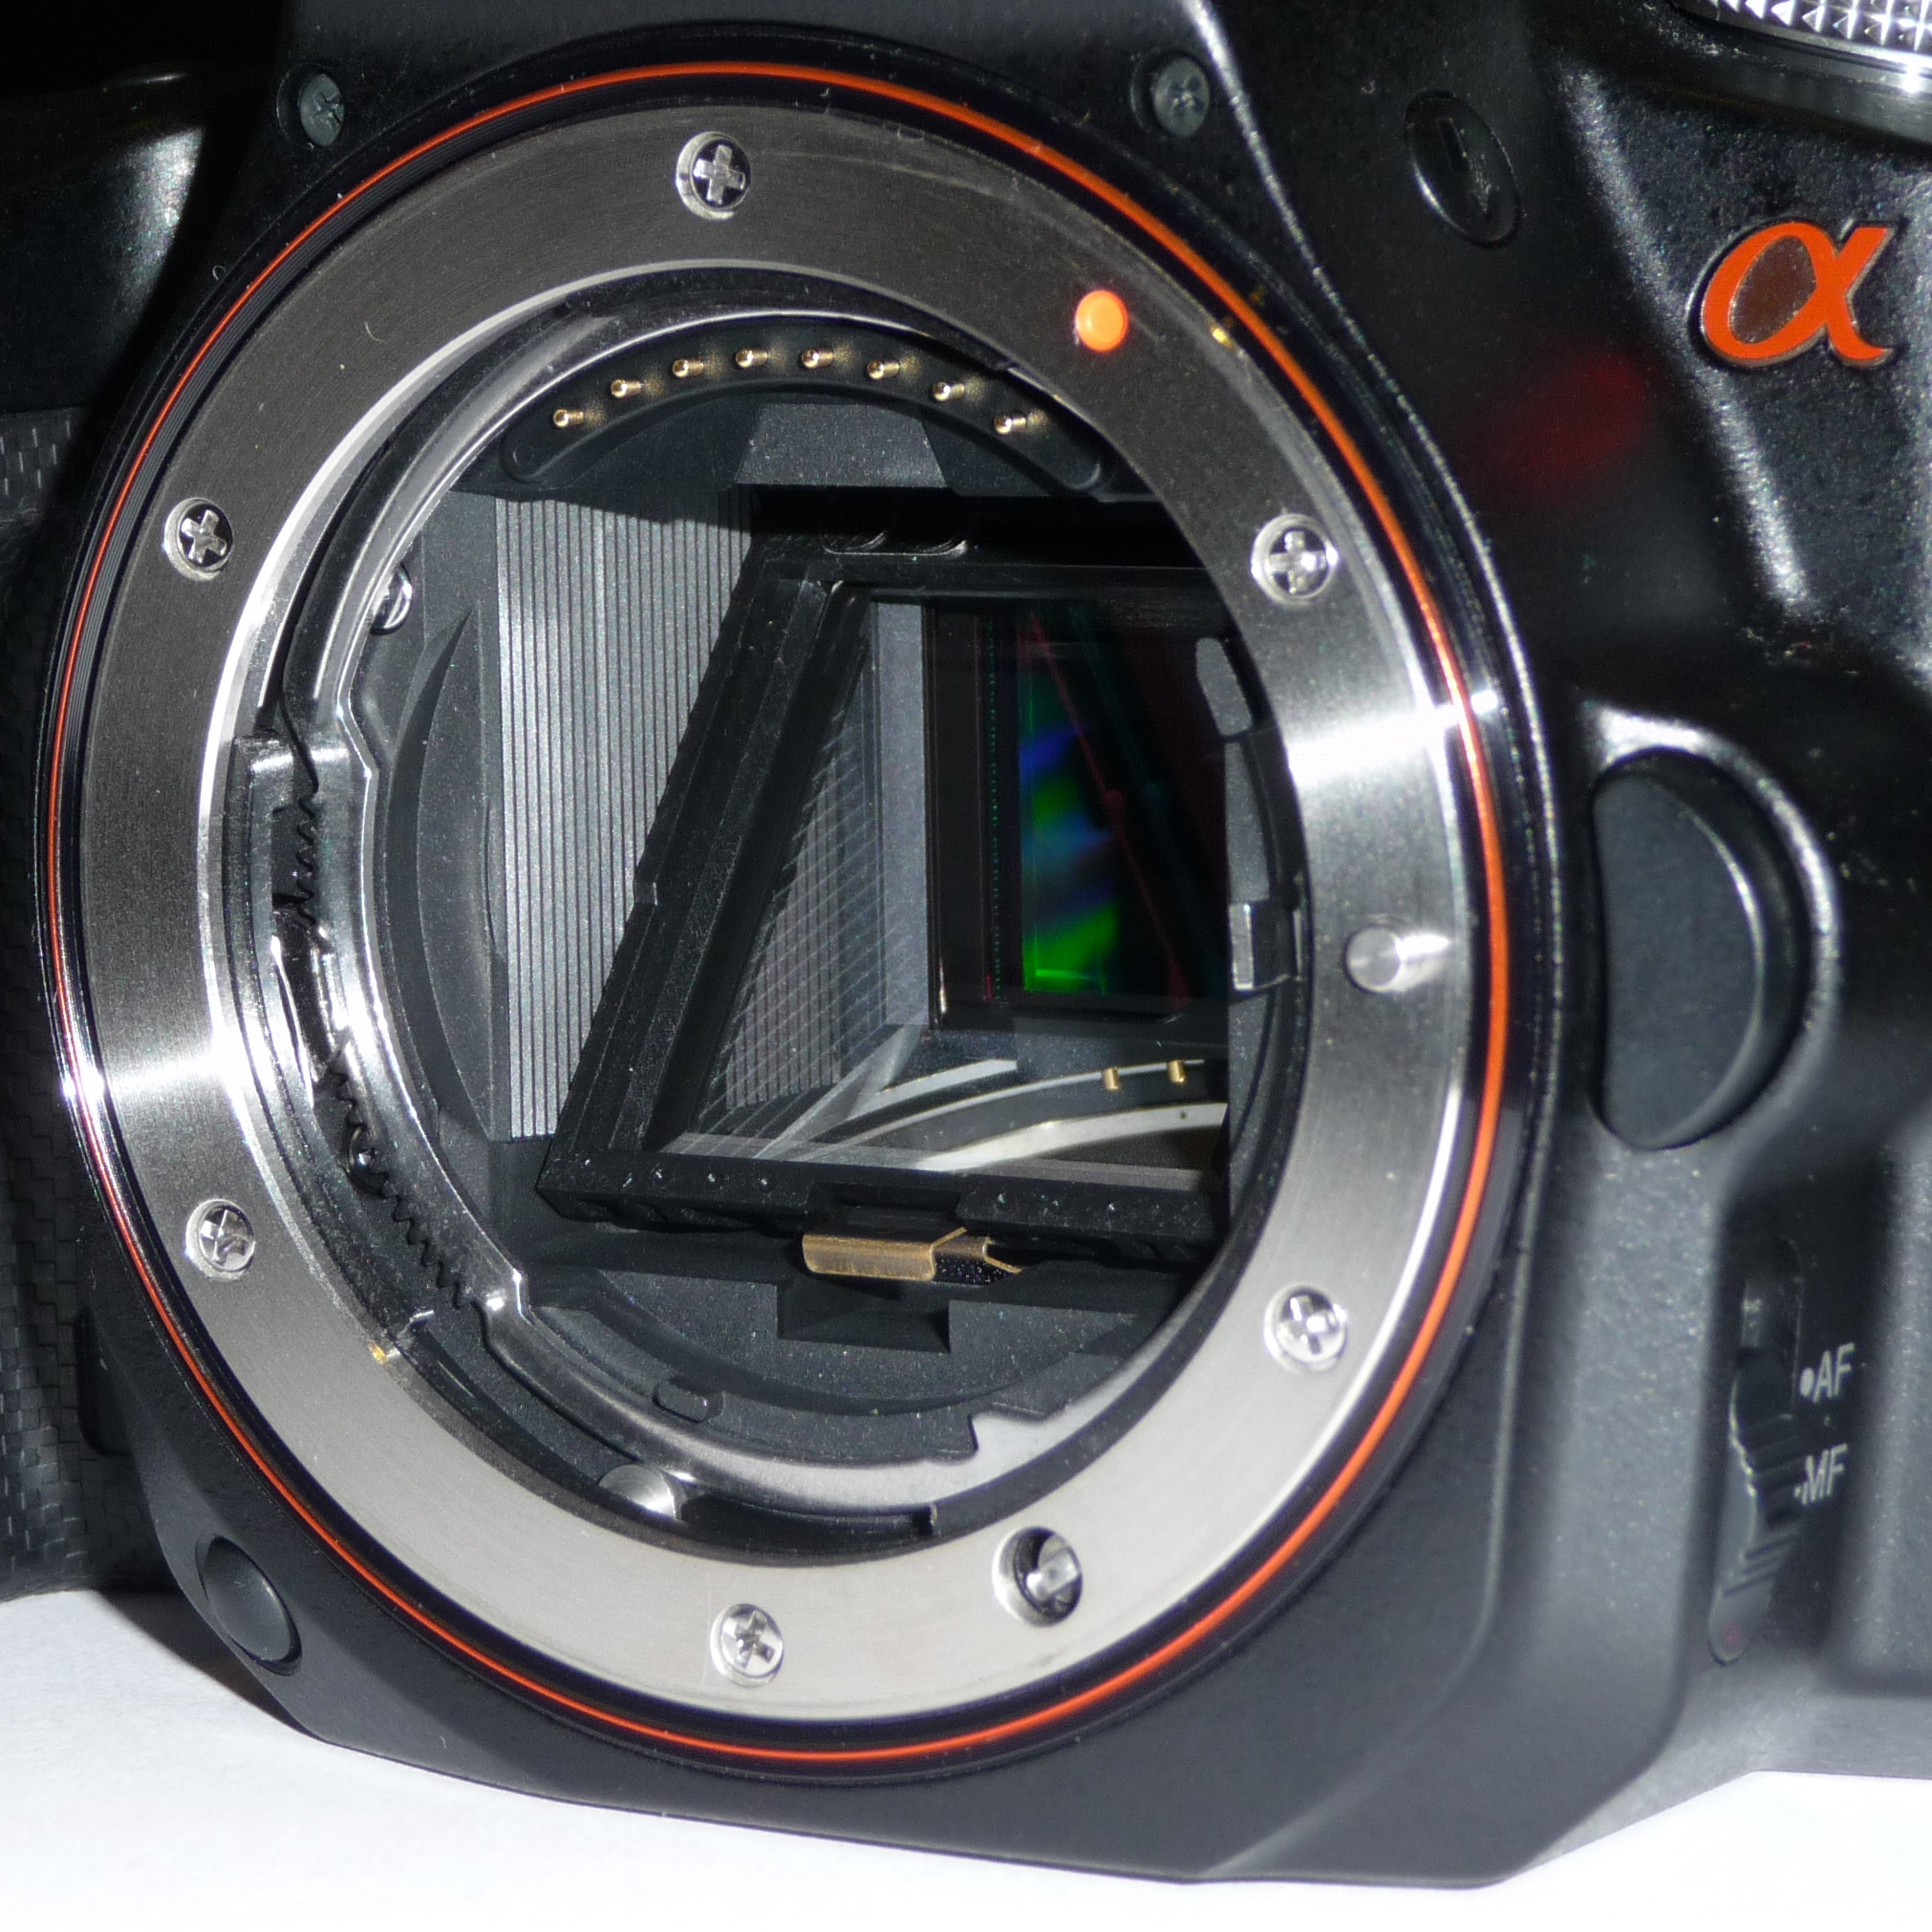 Sony A-Mount, body